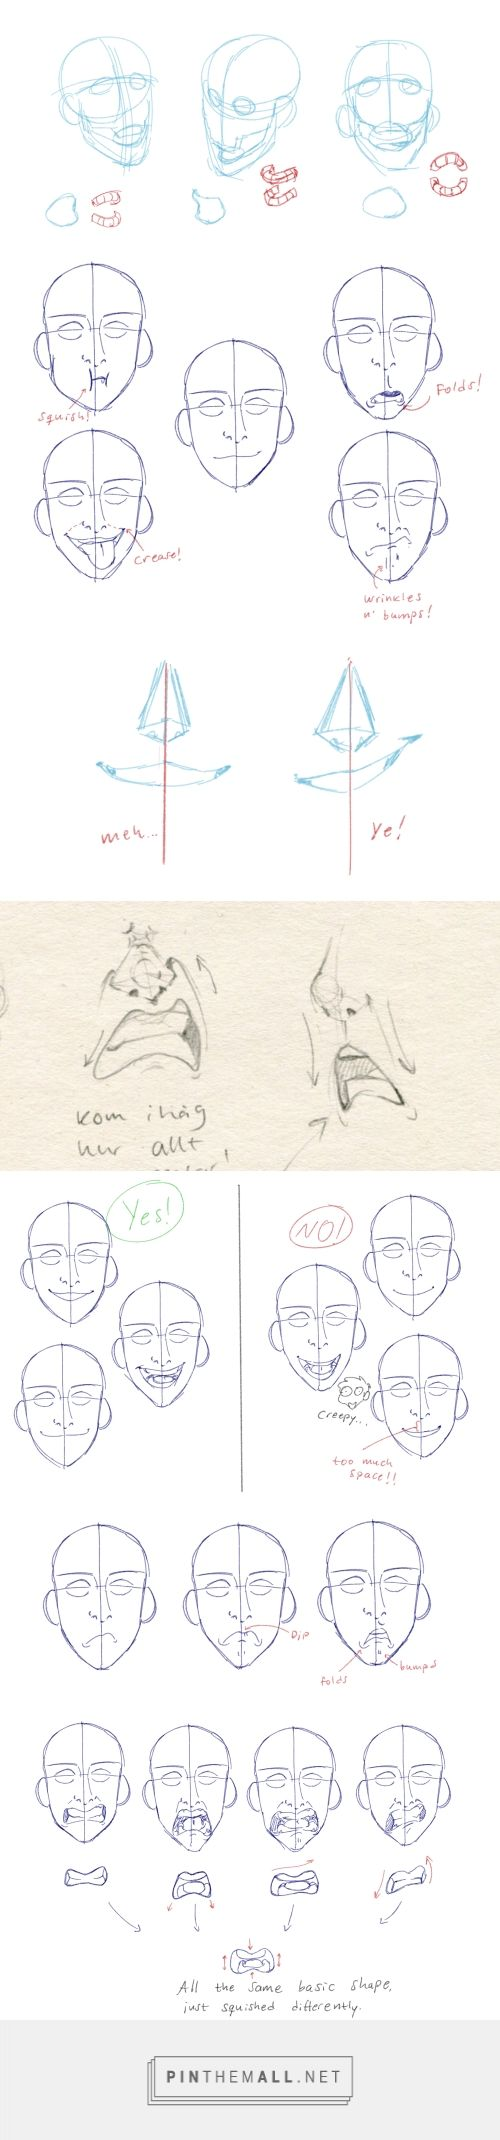 How to show expression with the mouth! by elviras-teckningar  #tumblr #drawing #tutorial #expressions #drawingtips #drawingtutorial #characterdesign - created via https://pinthemall.net